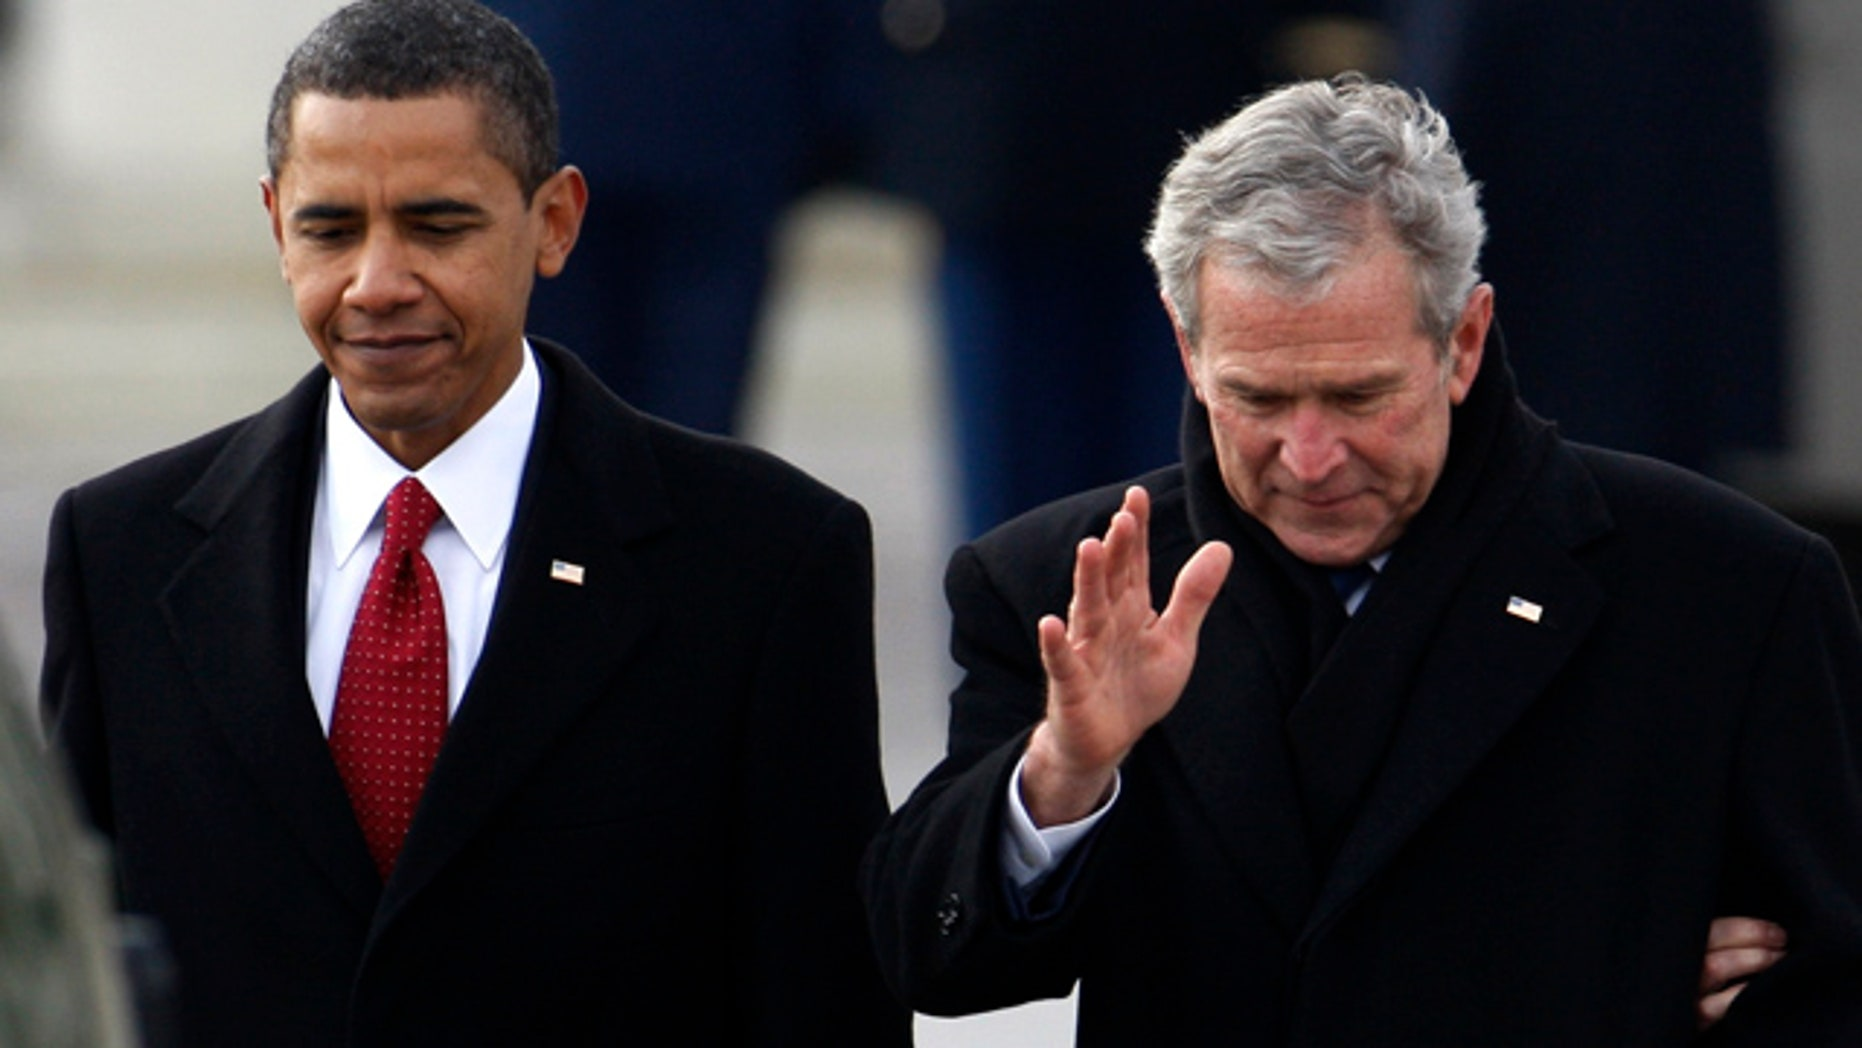 Jan. 20, 2009: President Obama escorts former President Bush to a waiting helicopter behind the U.S. Capitol after Obama's inauguration ceremony in Washington.